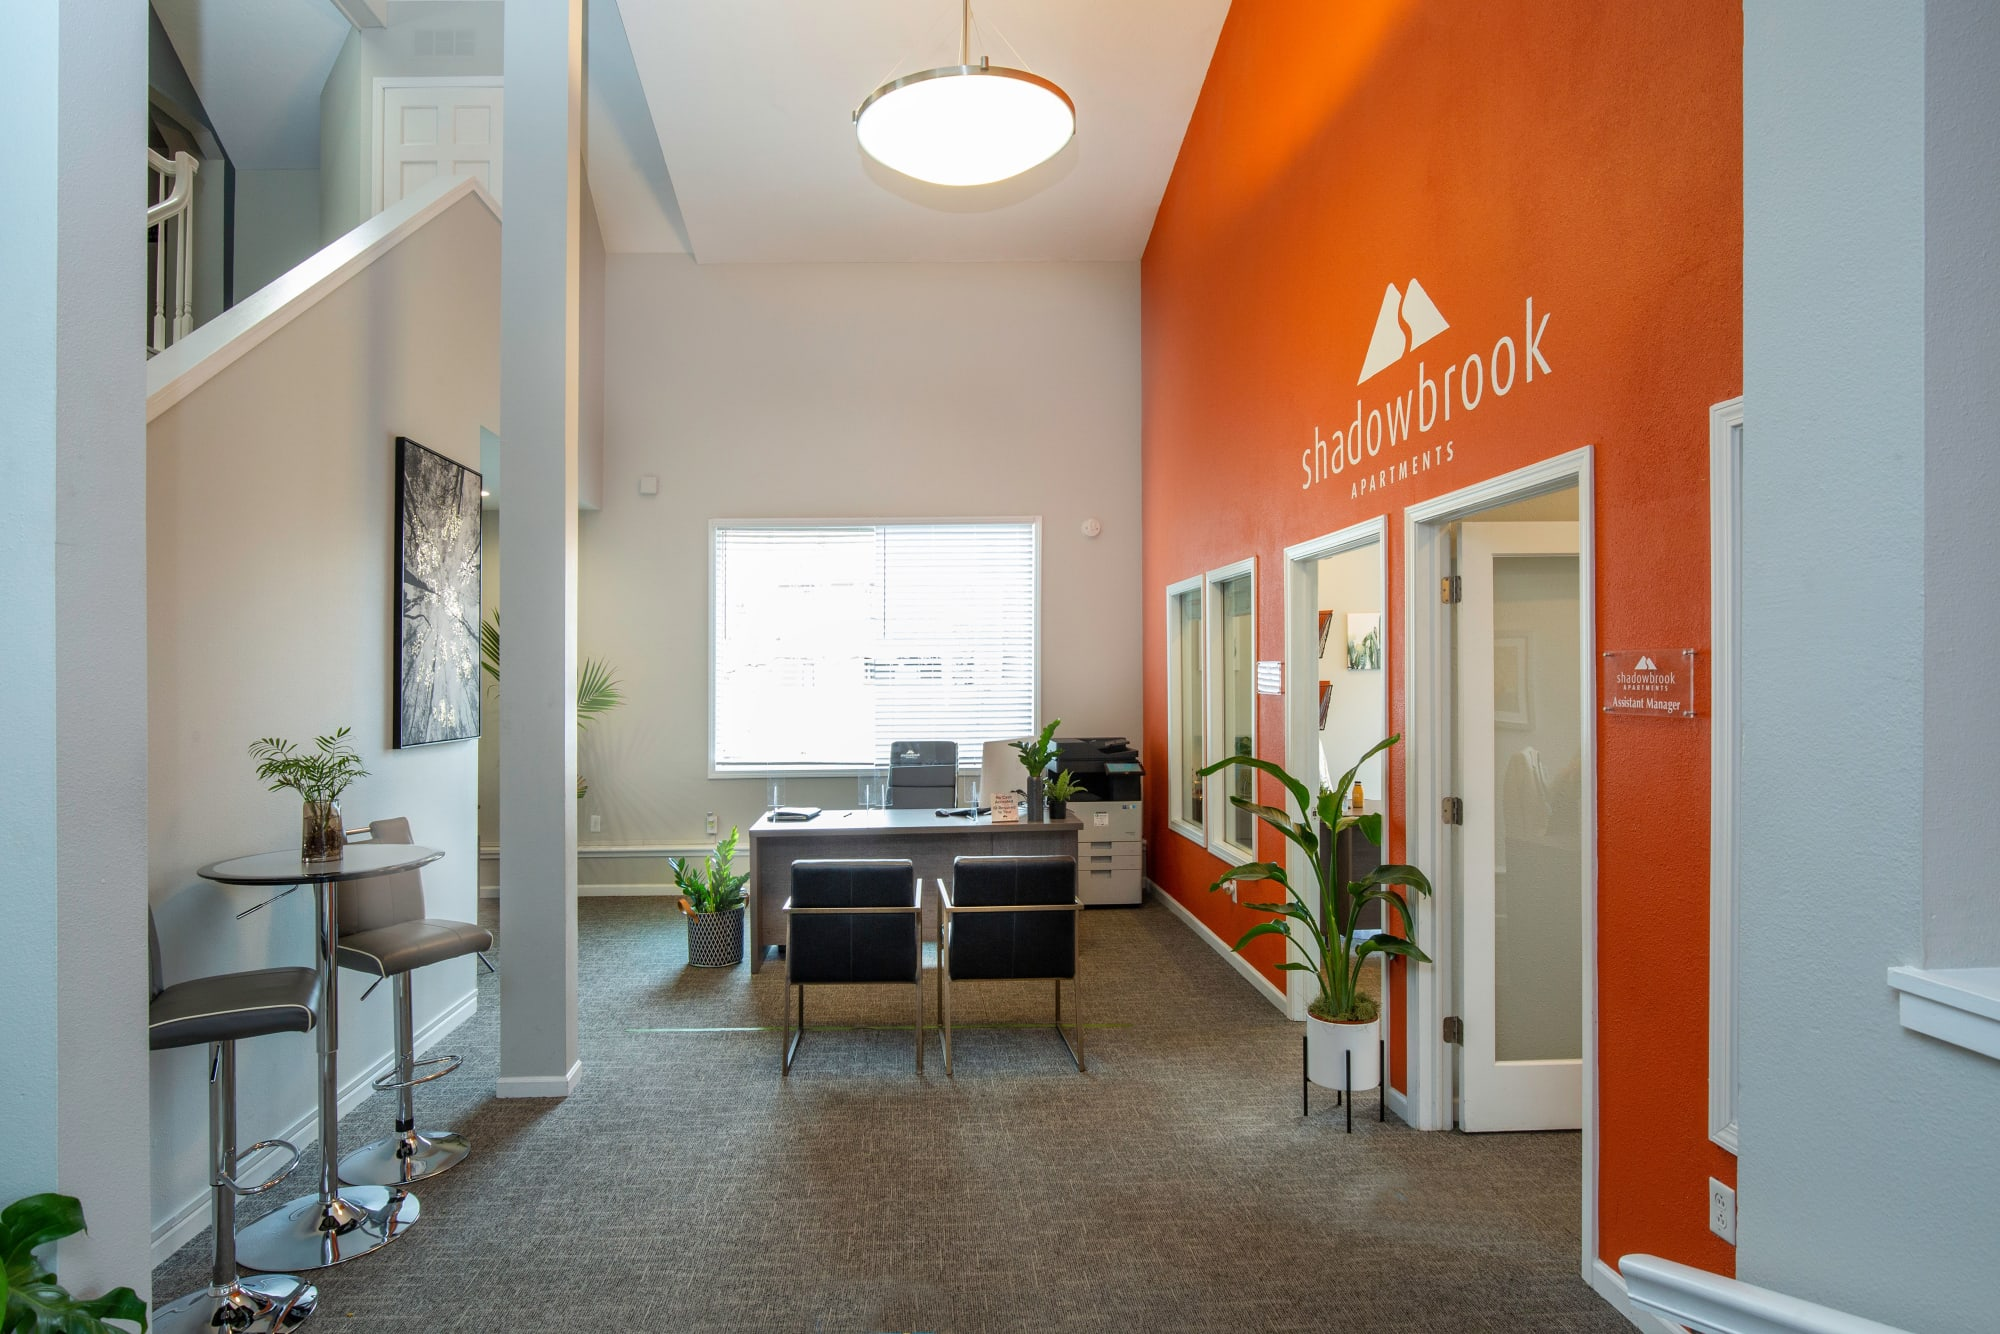 Interior of the clubhouse at Shadowbrook Apartments in West Valley City, Utah